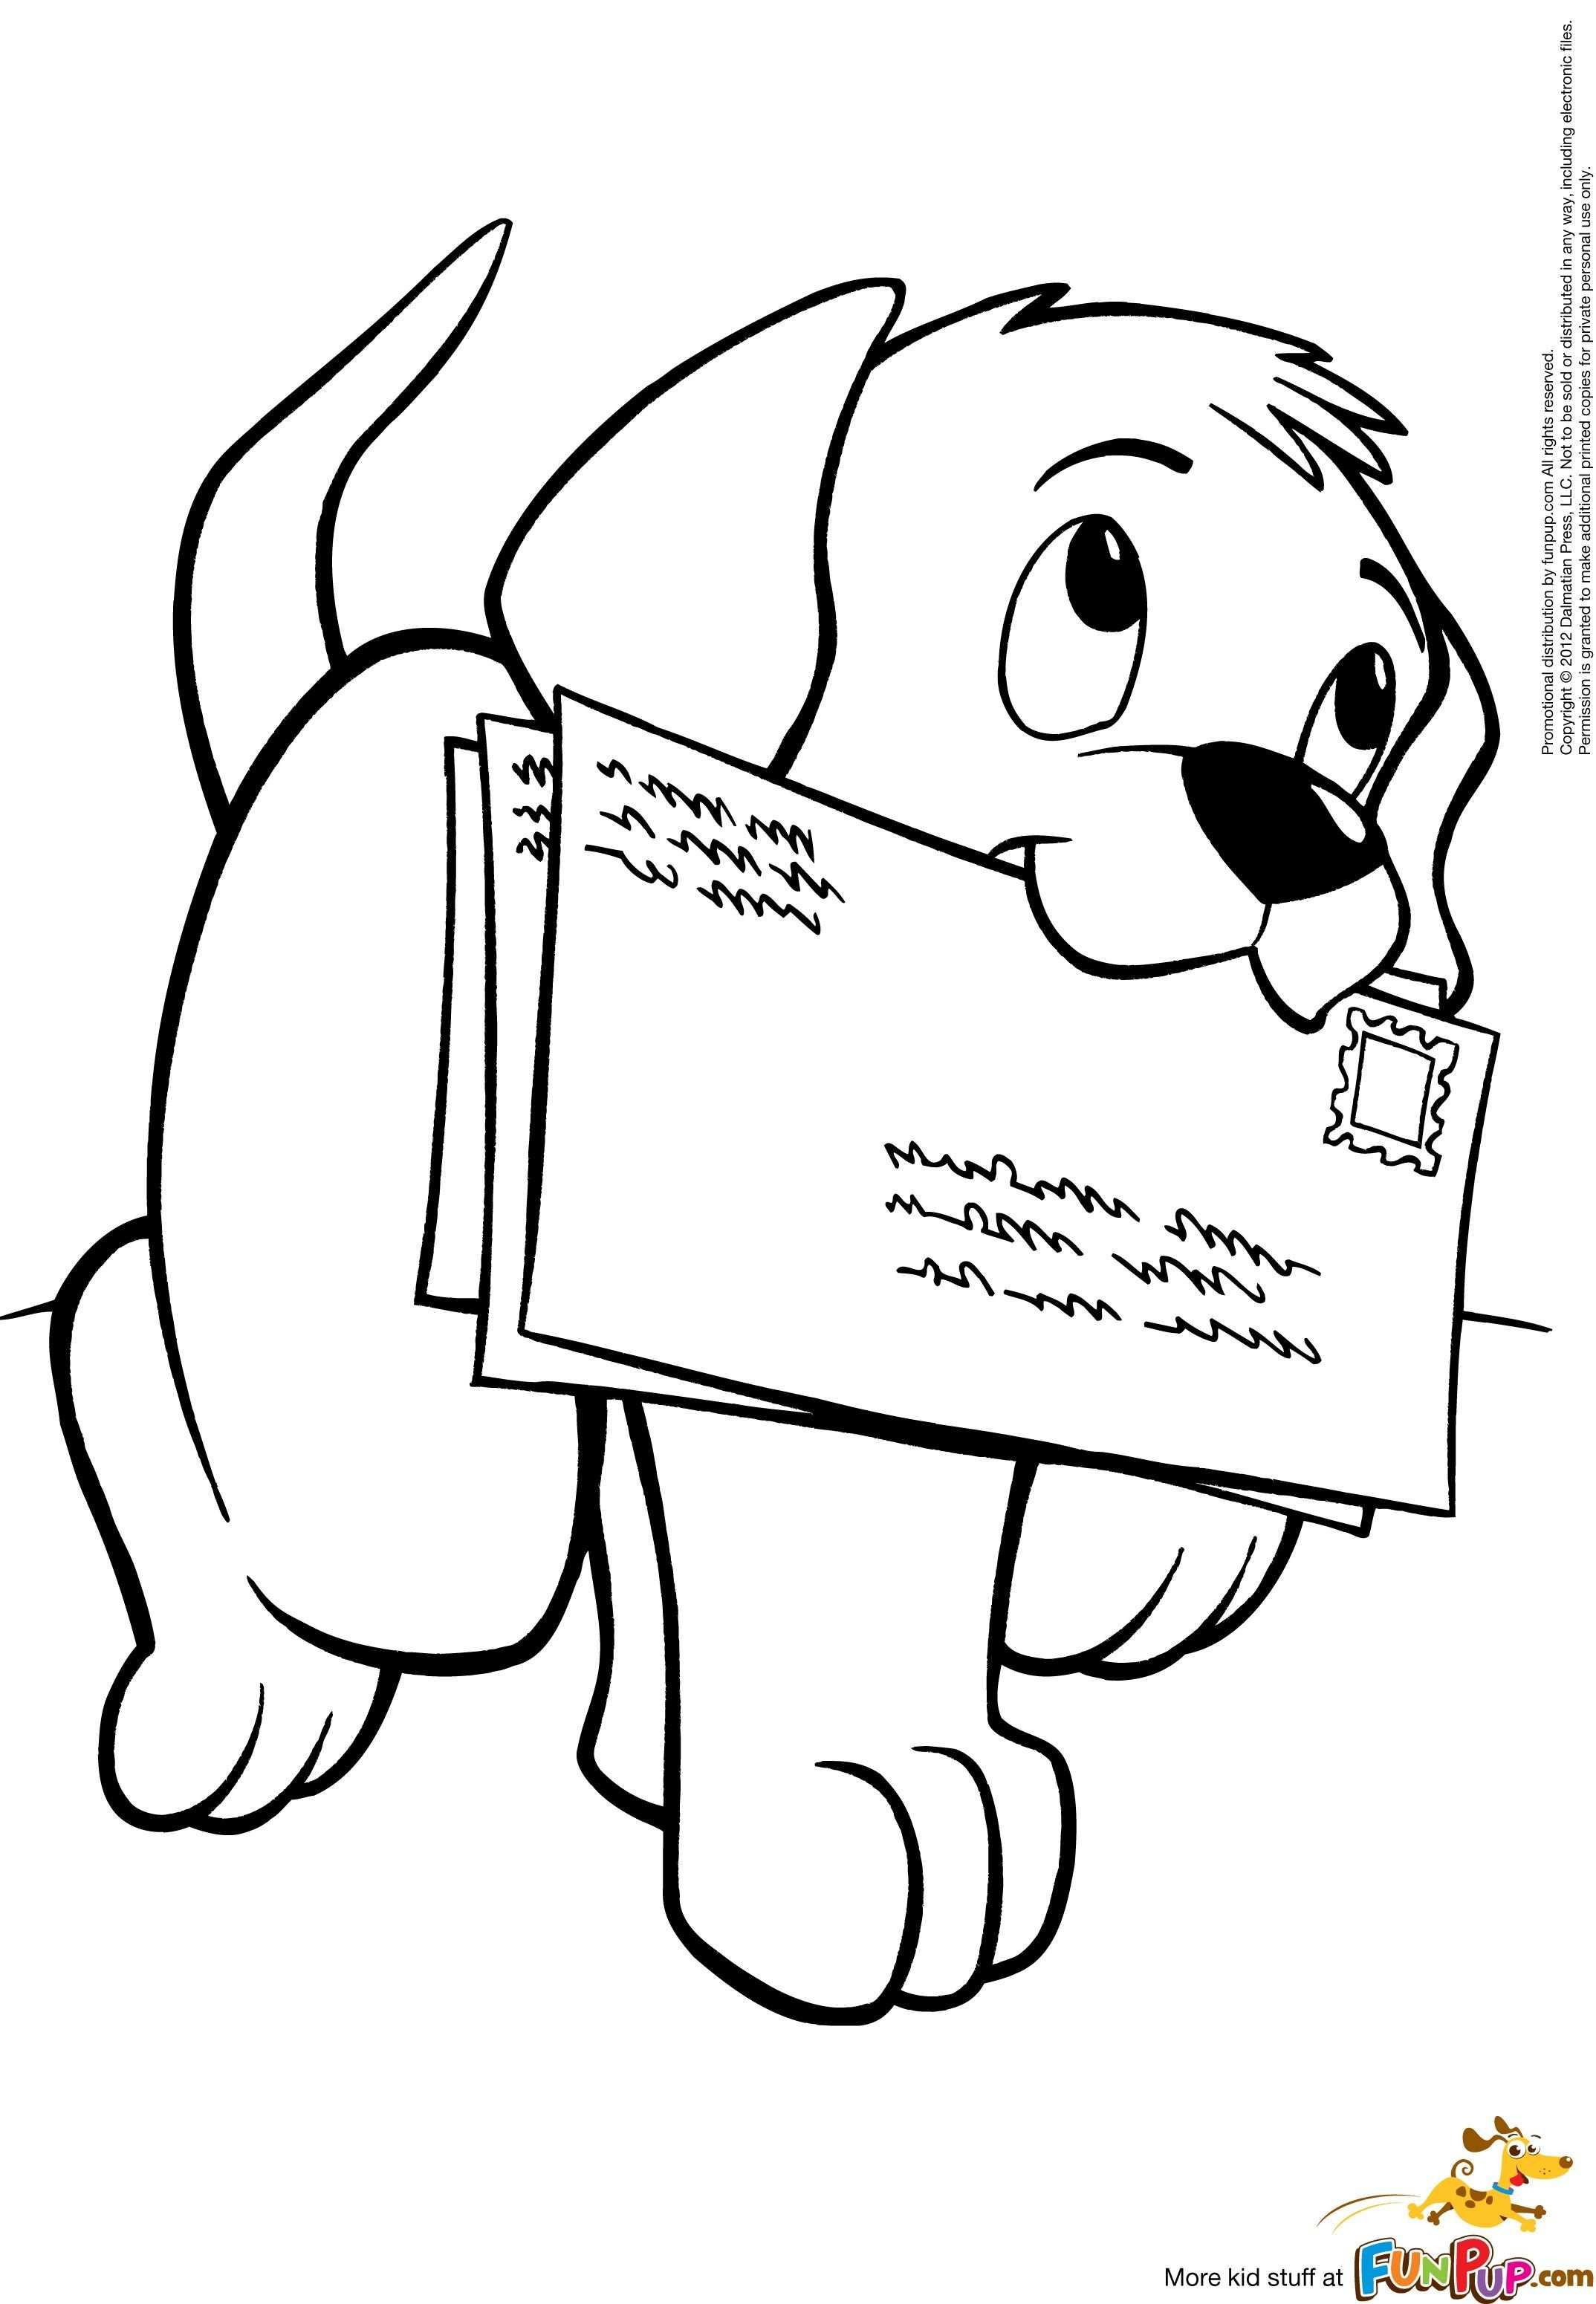 Printable Puppy Coloring Pages Free Kleurplaten Disney